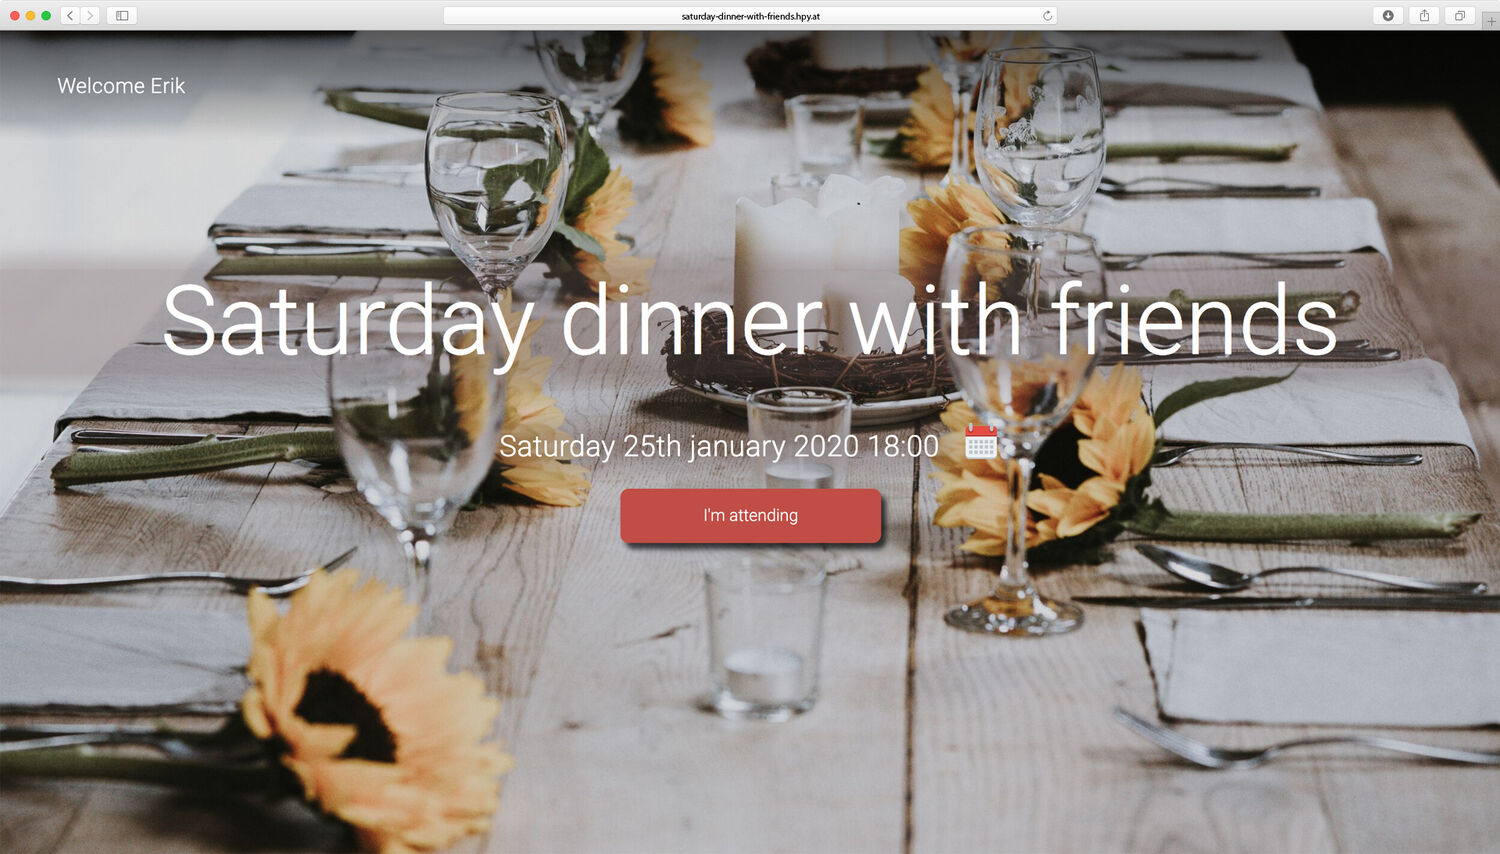 Organize a saturday dinner event